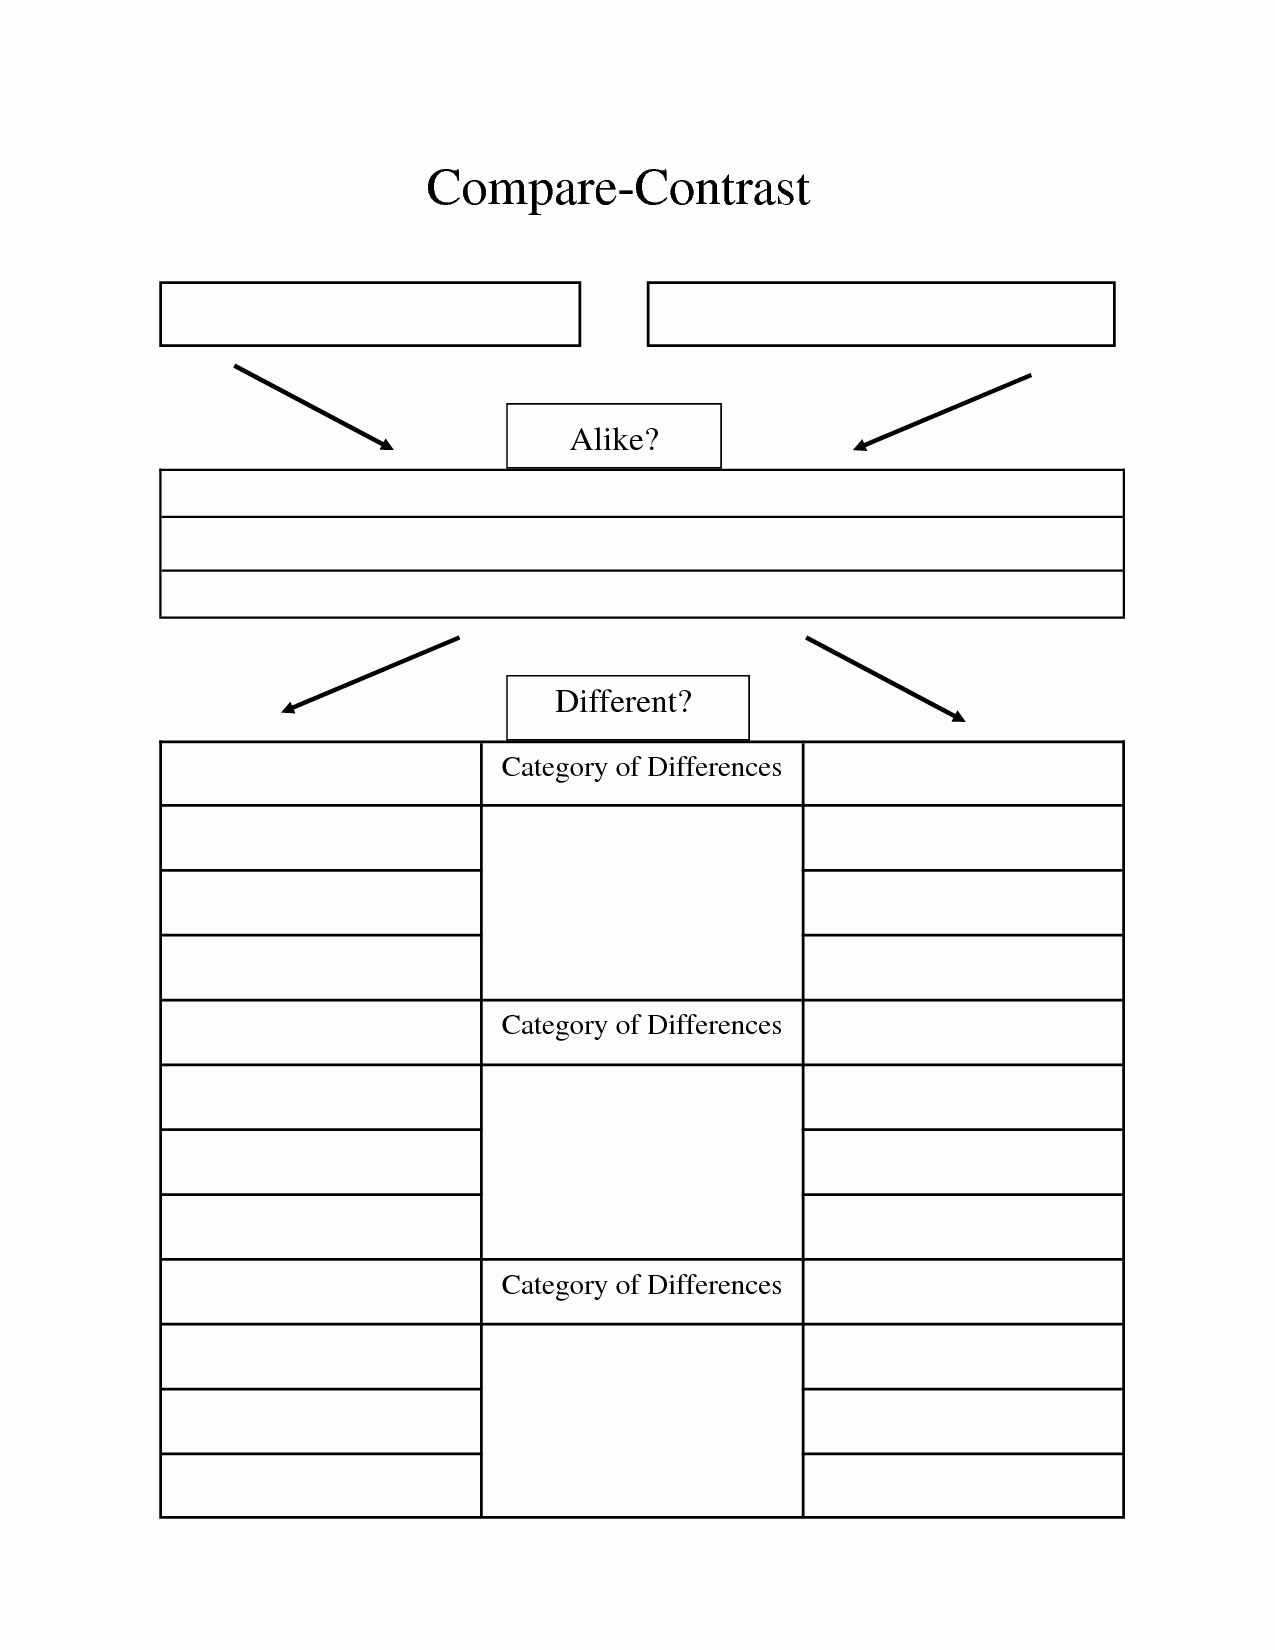 Movie Magic Budgeting Templates Best Of Pare Contrast Essay Graphic organizer